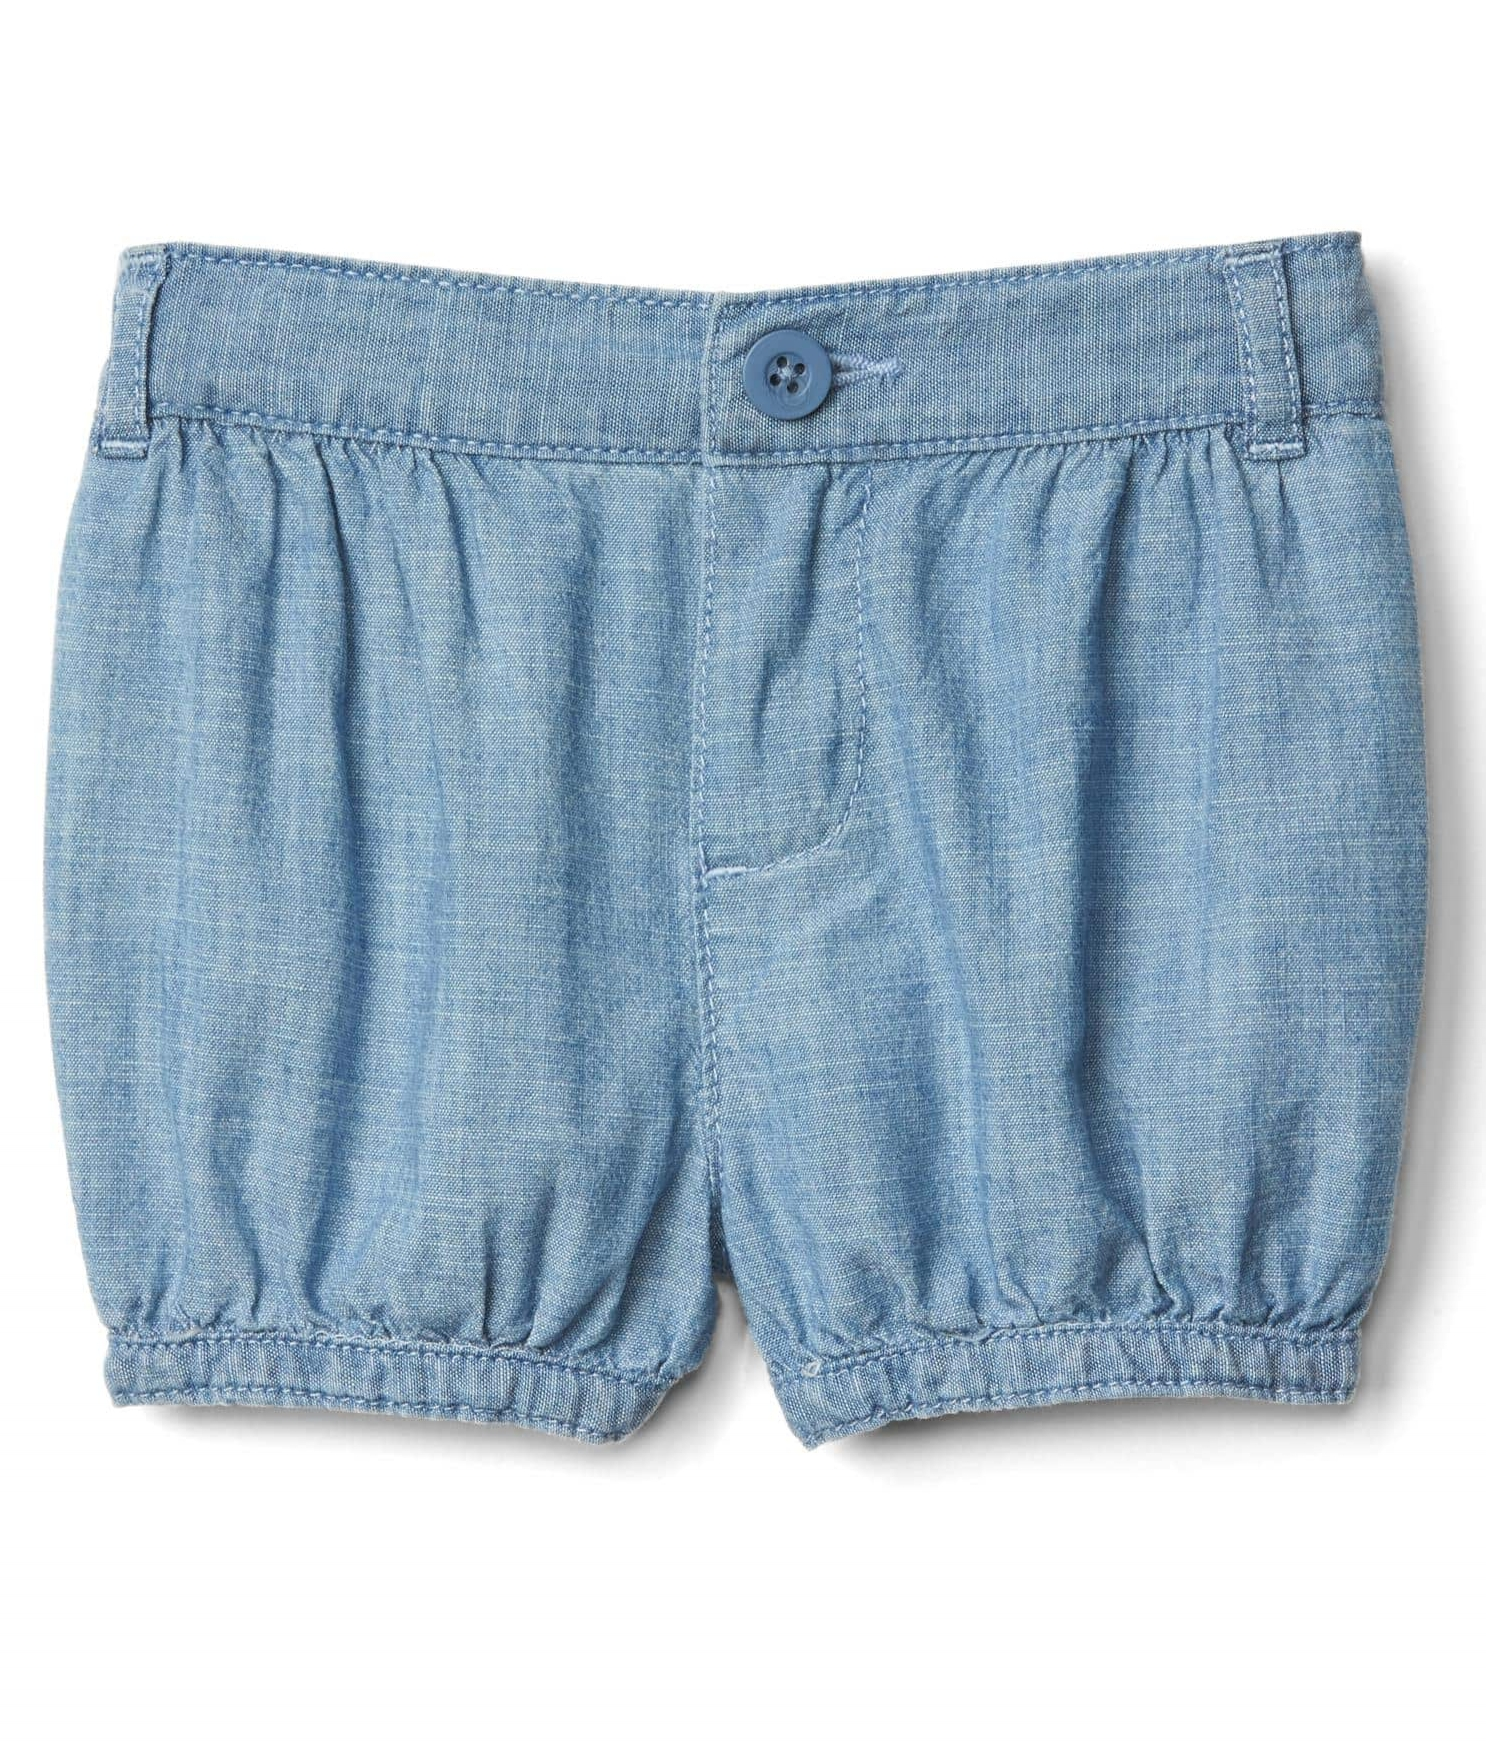 Chambray Bbble Shorts - $29.95 Gap